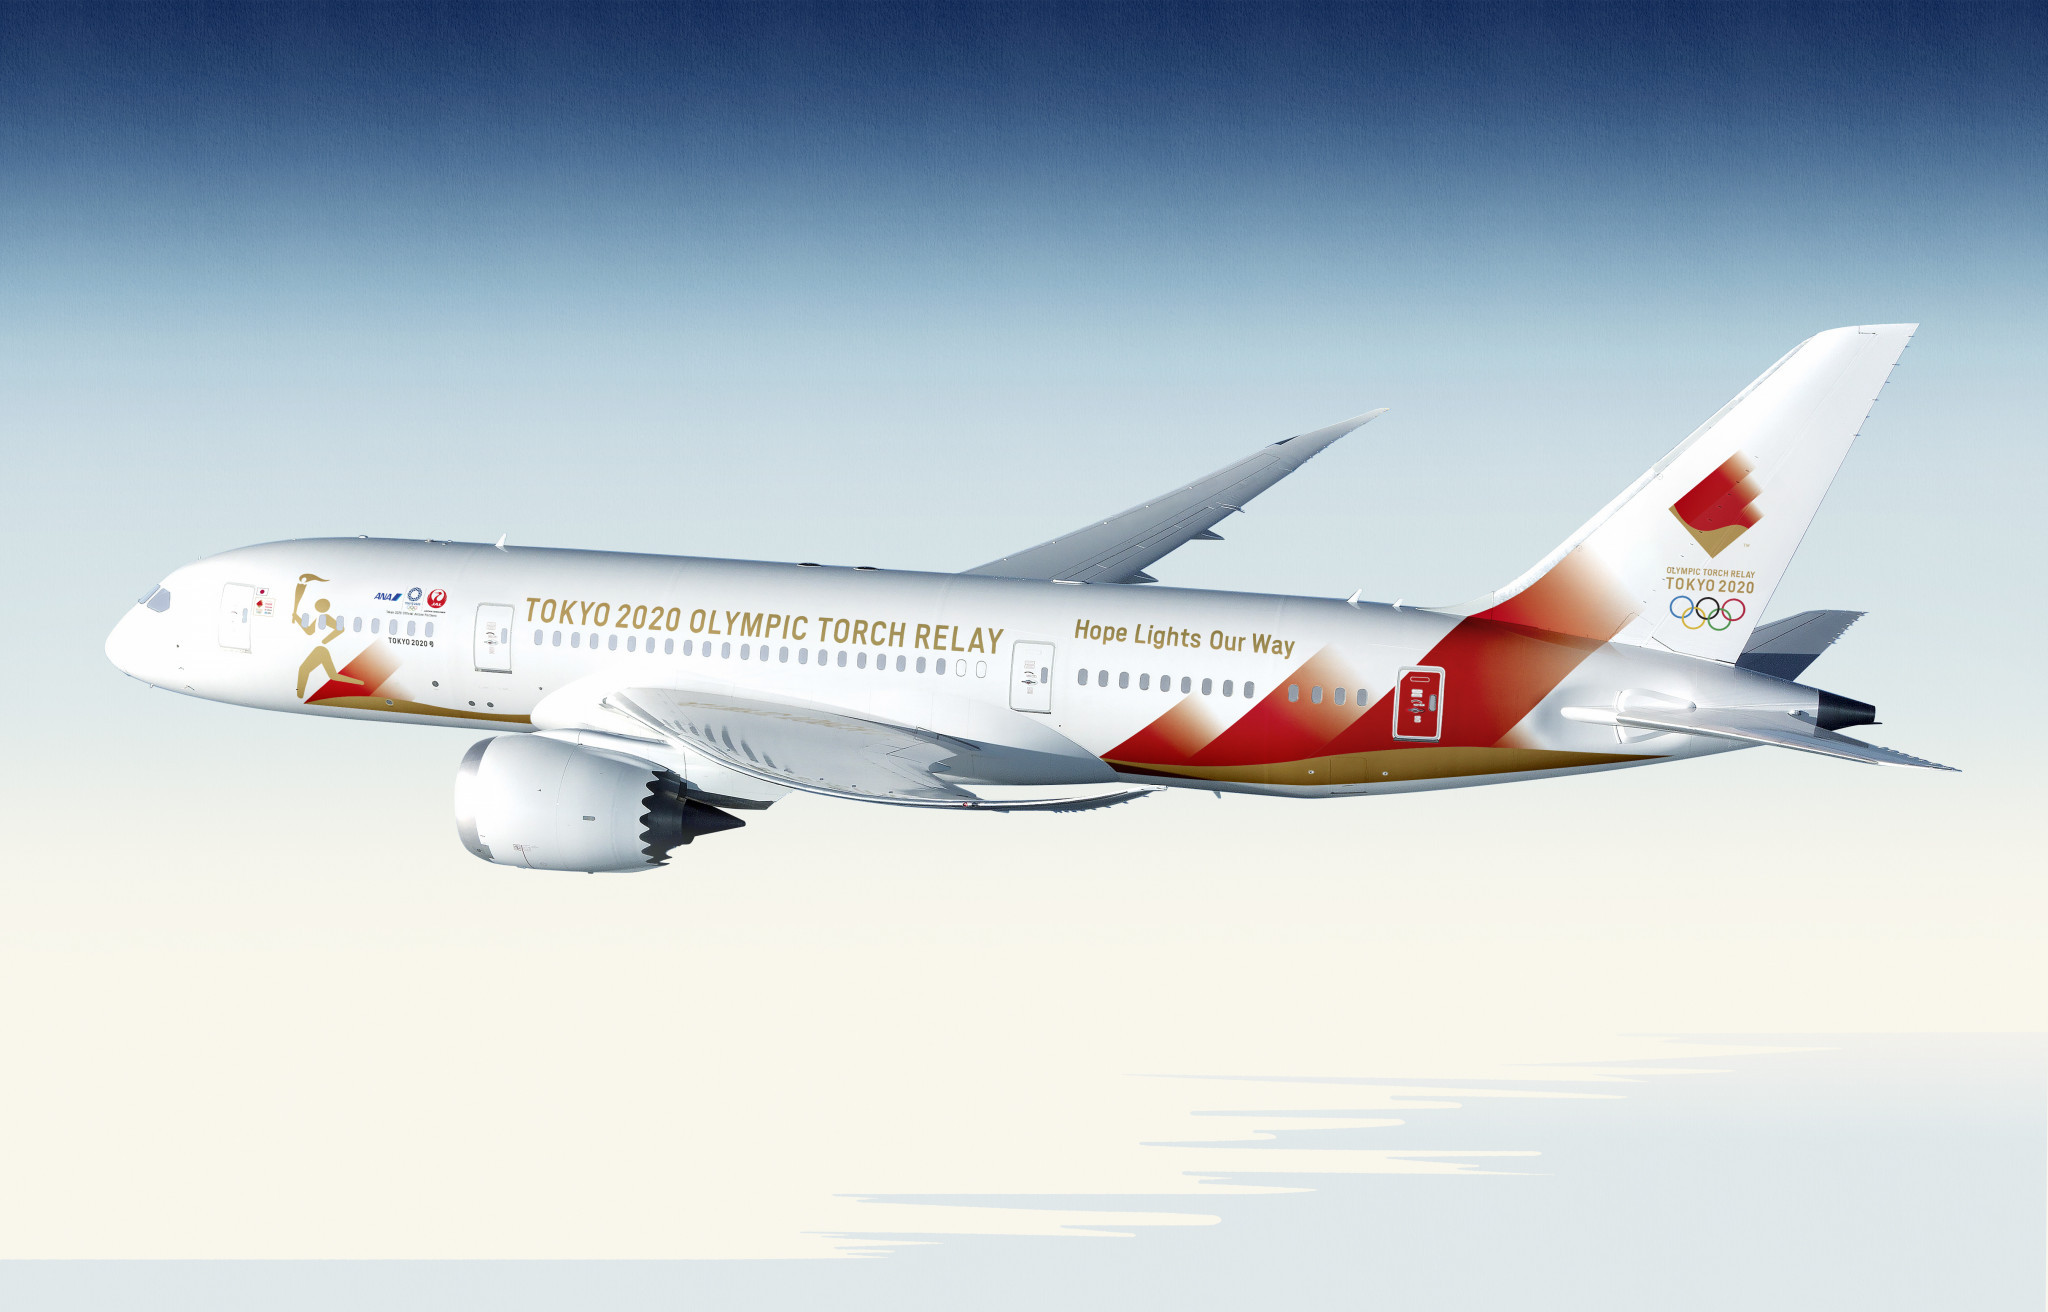 A special aircraft will be commissioned to take the Olympic Flame to Tokyo ©Tokyo 2020